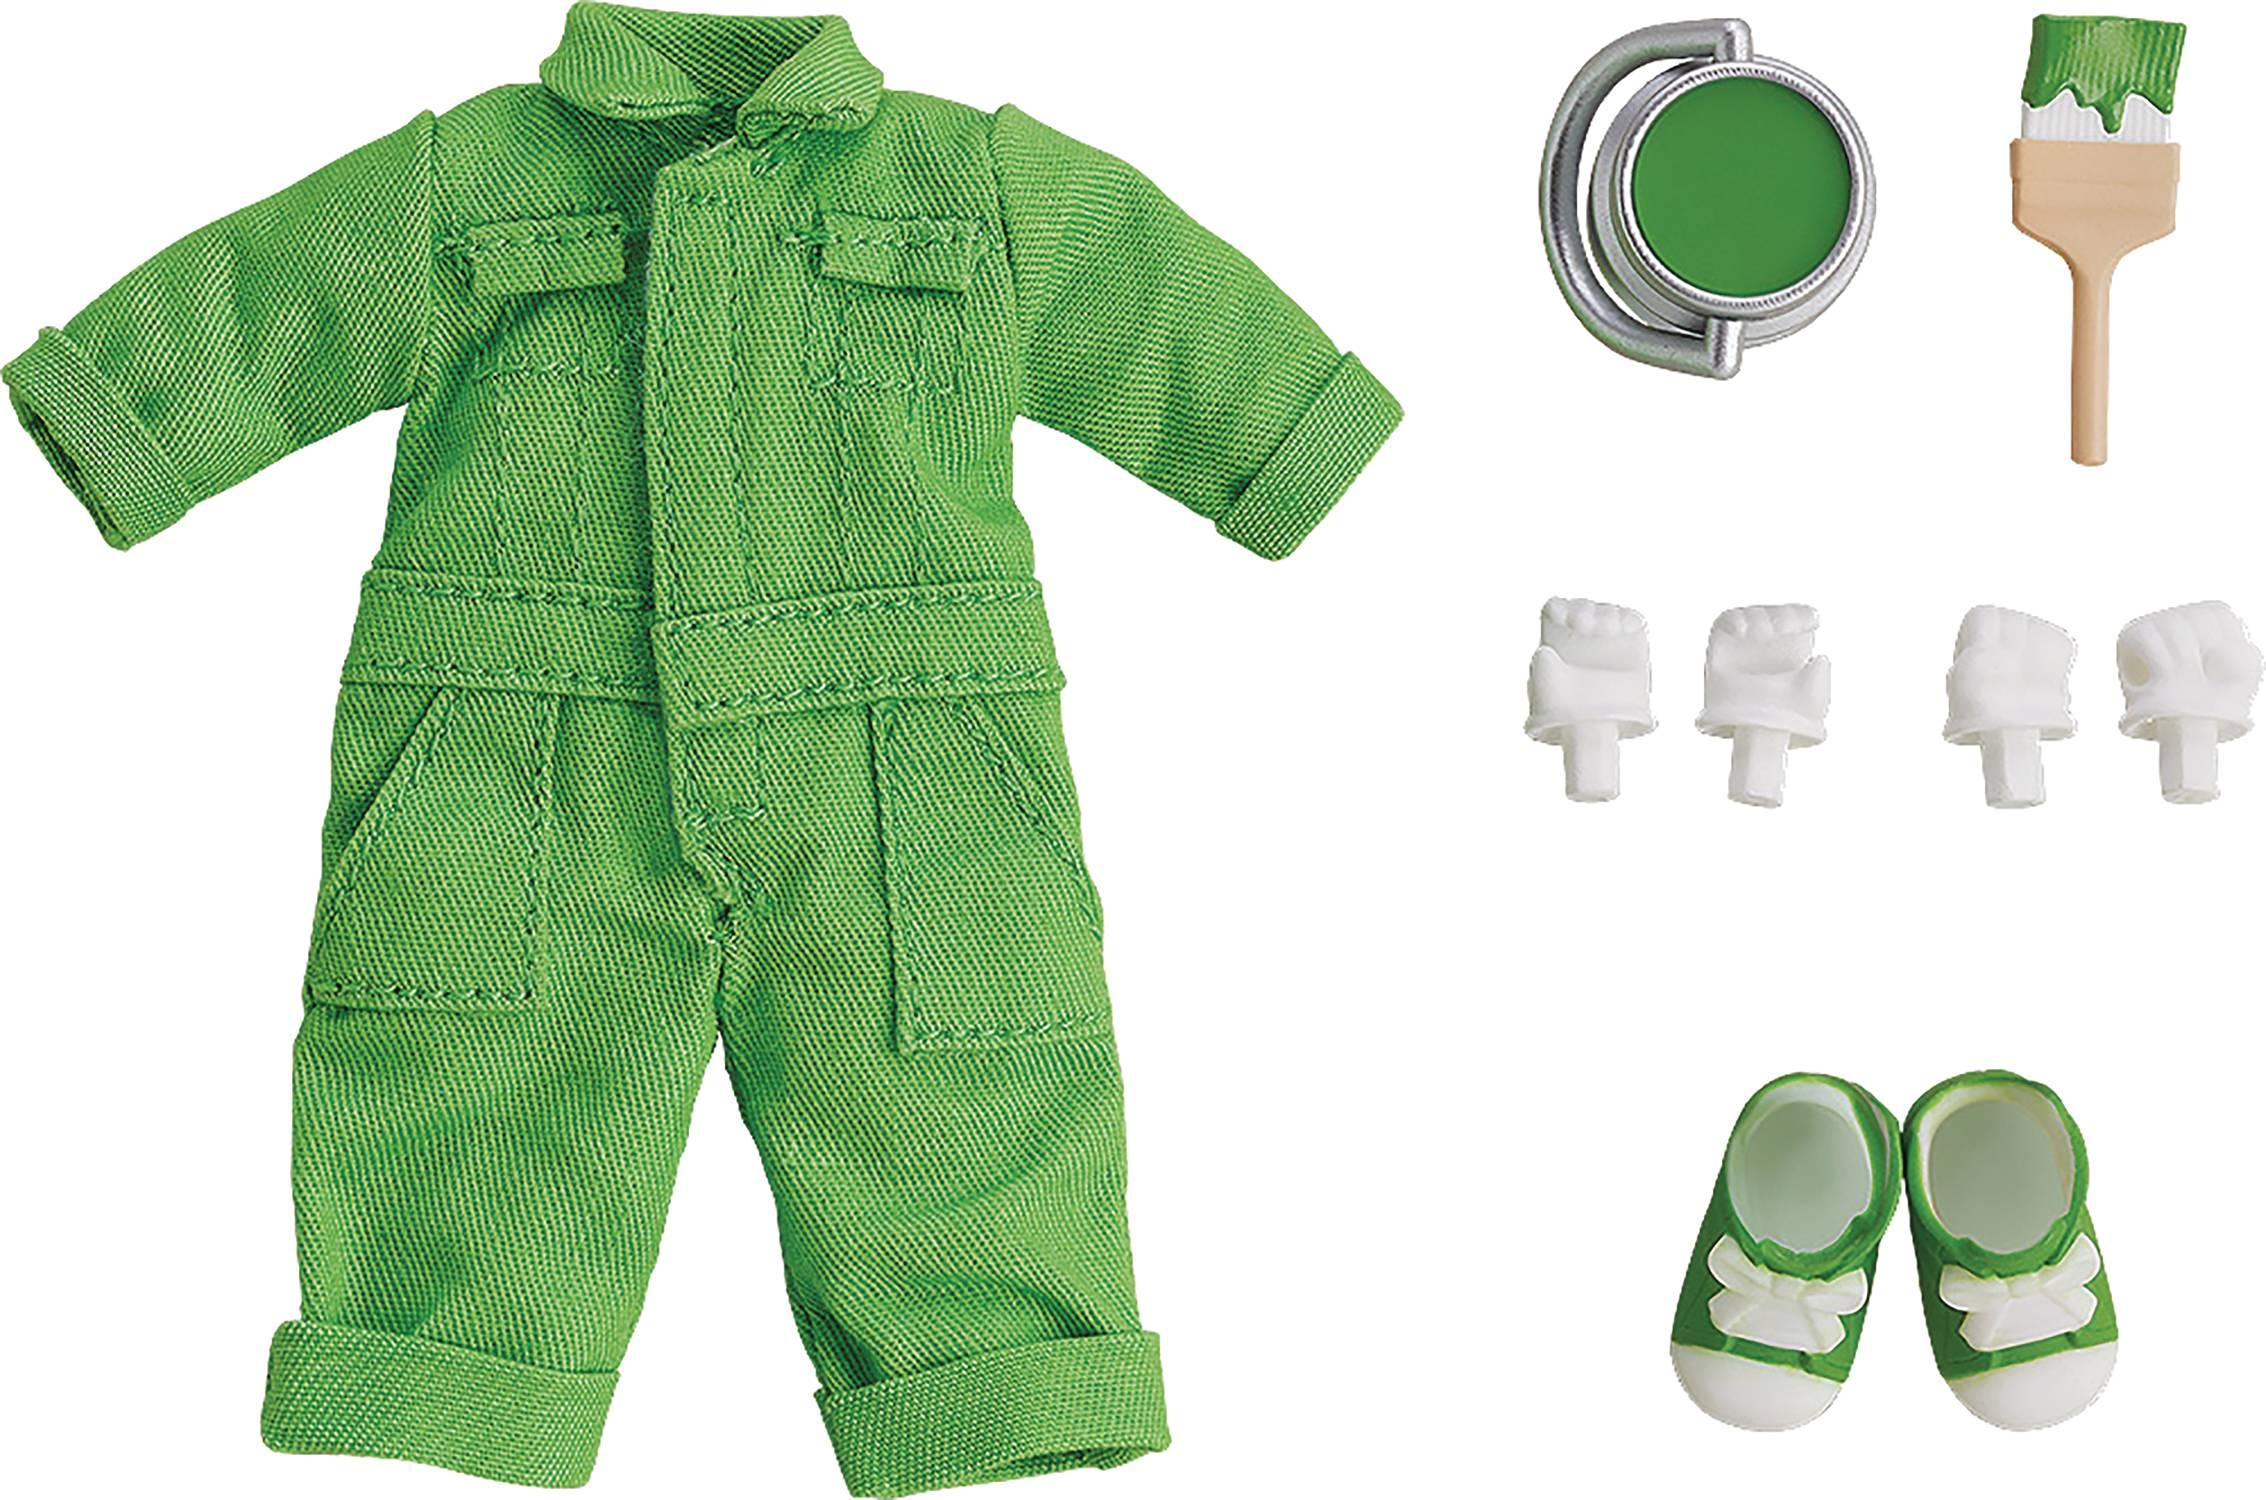 NENDOROID DOLL OUTFIT SET COLORFUL OVERALLS LIME GREEN VER (